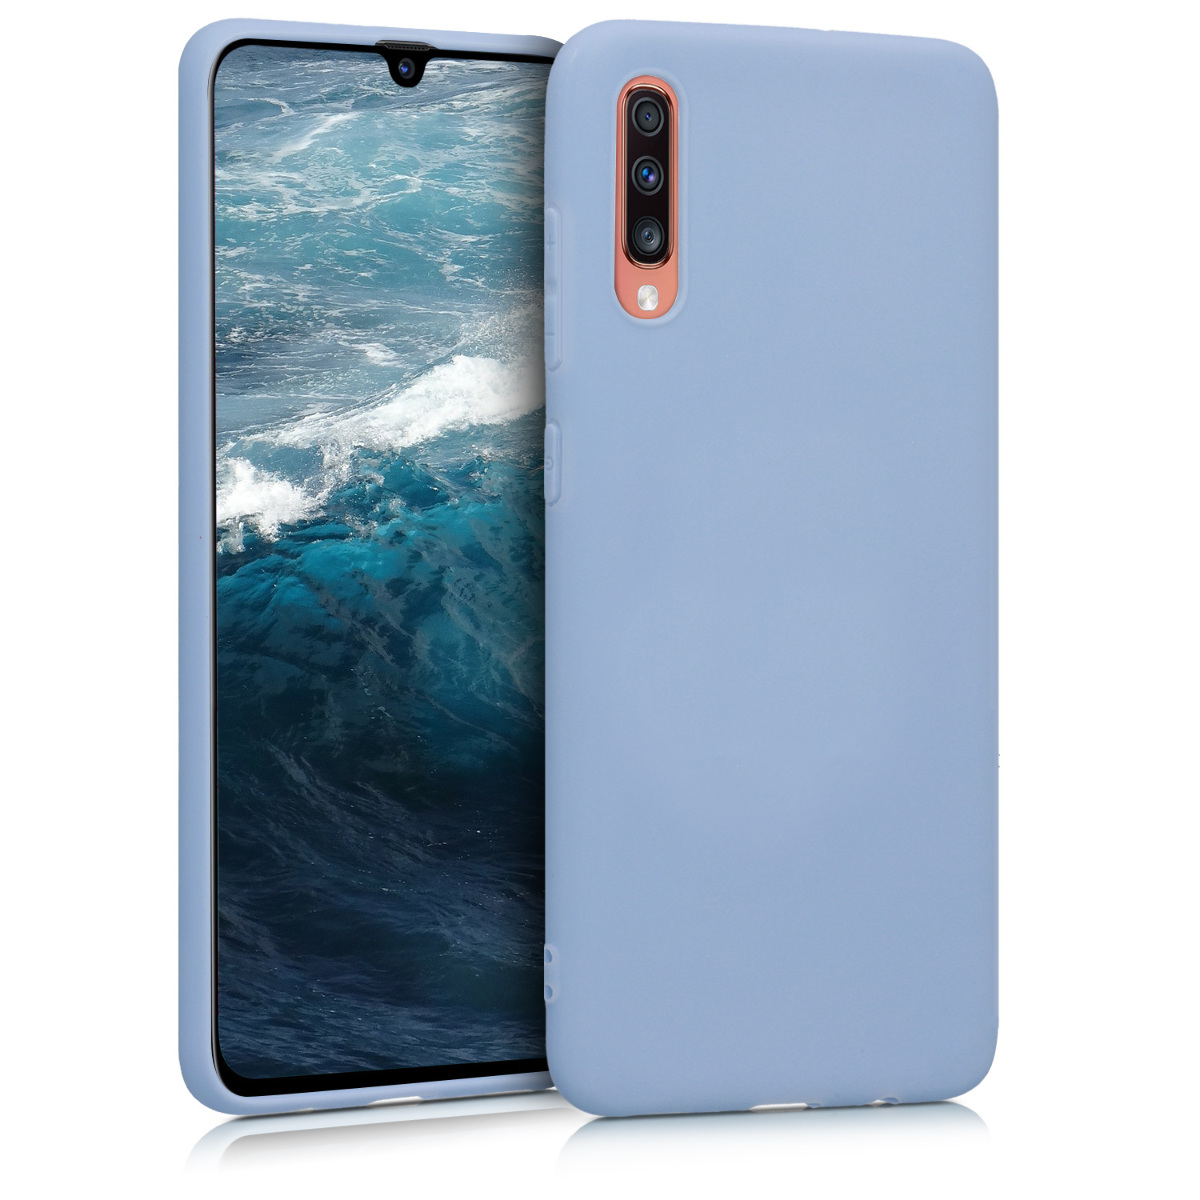 KW Θήκη Σιλικόνης Samsung Galaxy A70 - Light Blue Matte (48427.58)